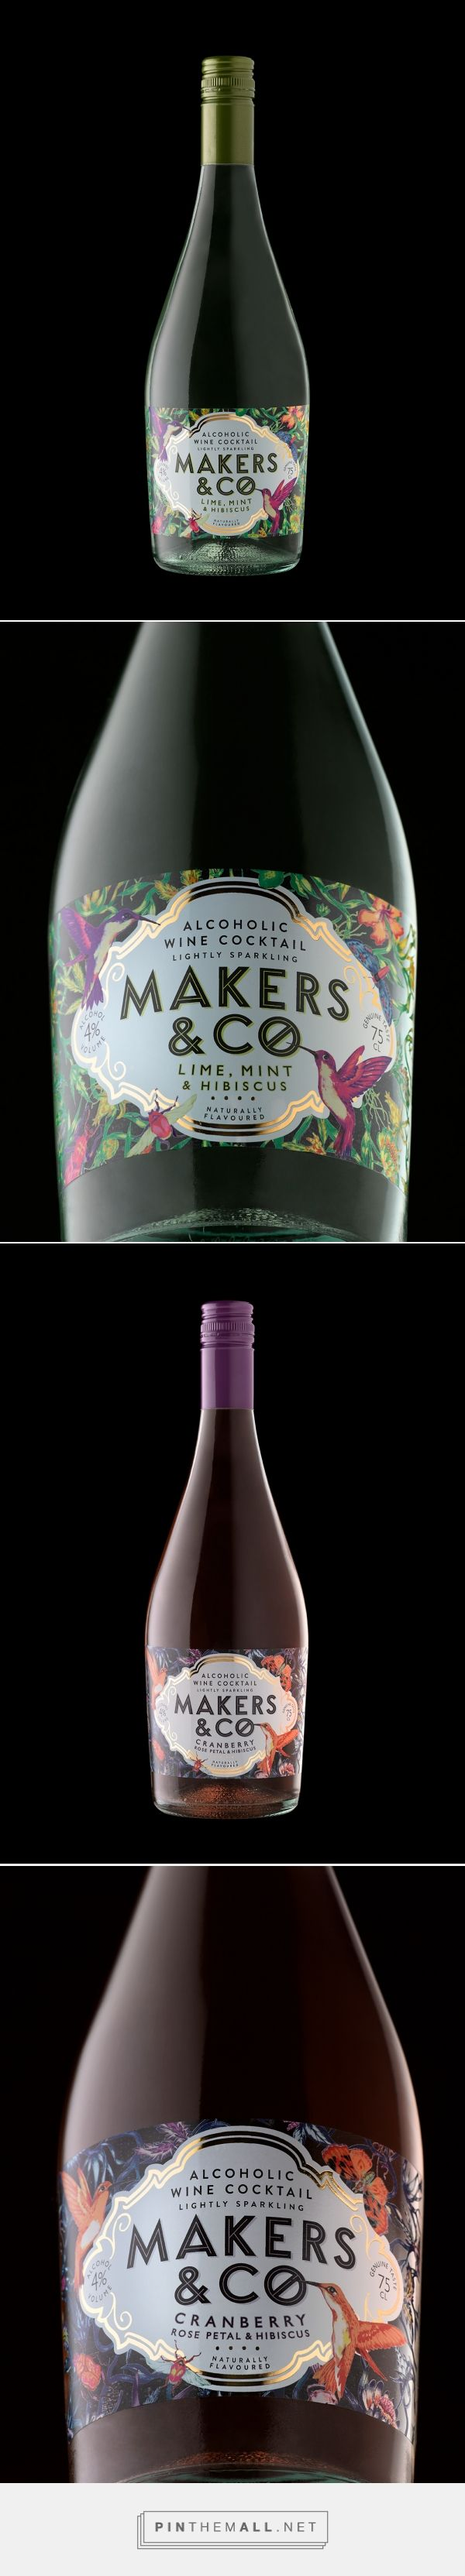 Makers & Co. wine packaging design by Stranger & Stranger - http://www.packagingoftheworld.com/2017/08/makers-co.html - created via https://pinthemall.net